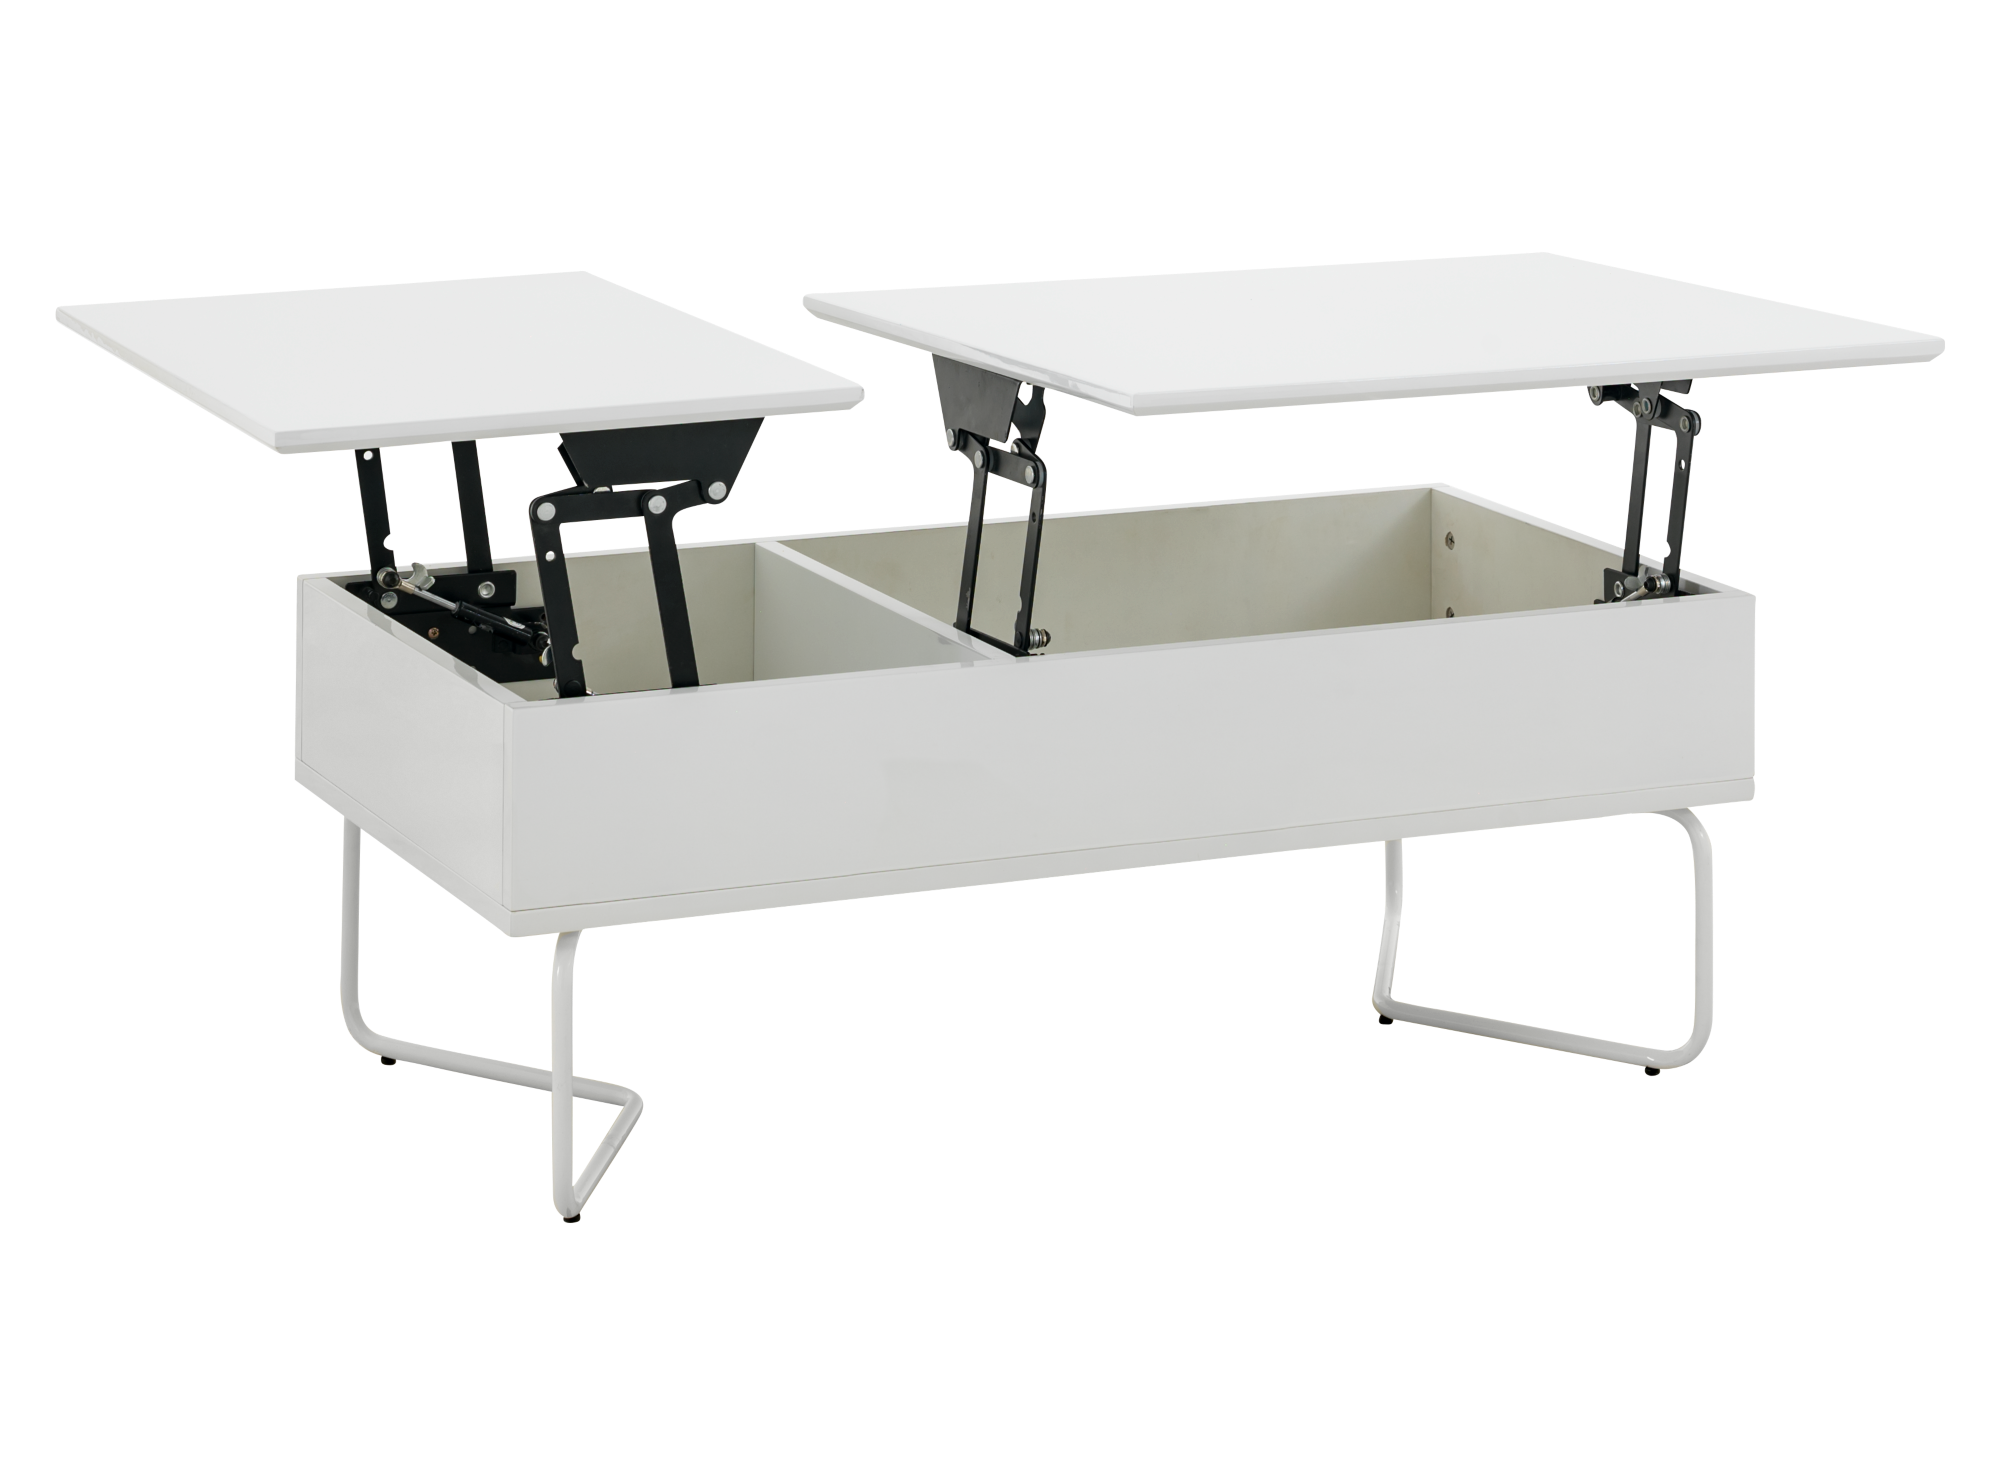 Table Basse Dinette Laque Blanc Meuble Fly Table Basse Table Basse D Appoint Table Basse Relevable